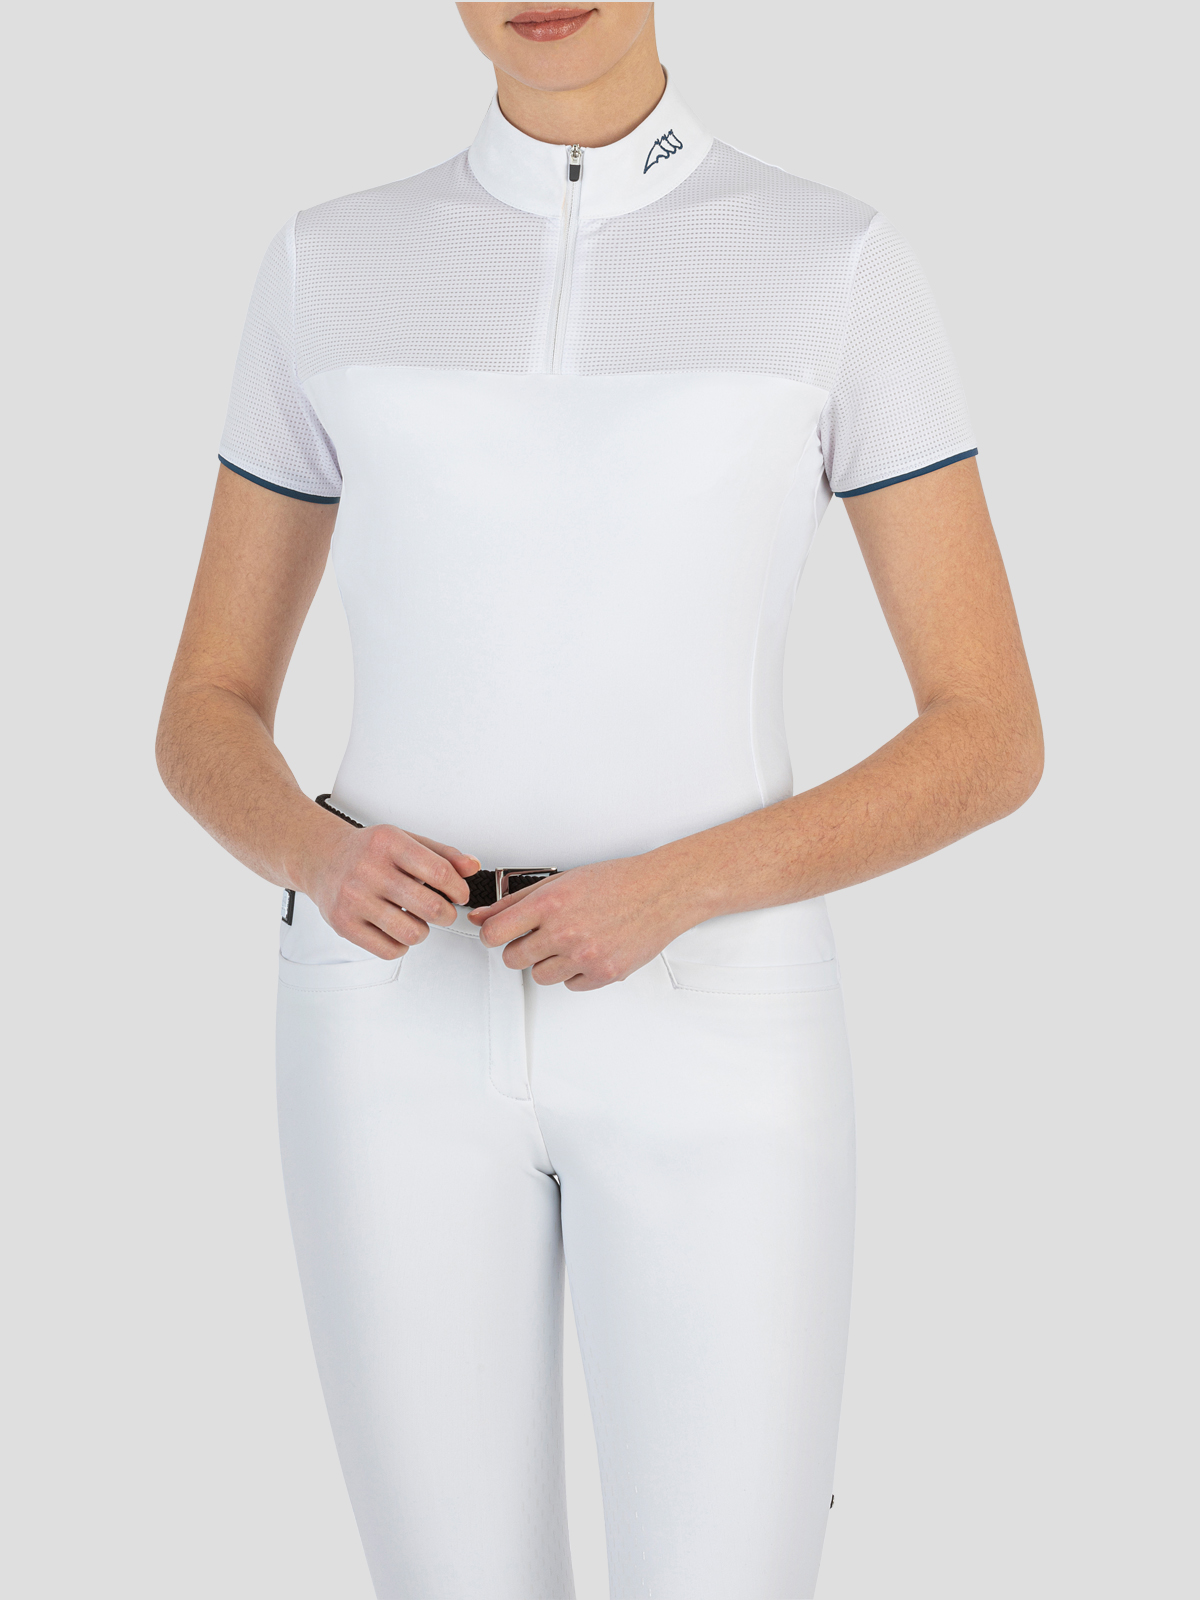 CORDA C WOMEN'S SHOW SHIRT WITH SHORT SLEEVES AND ZIP 5